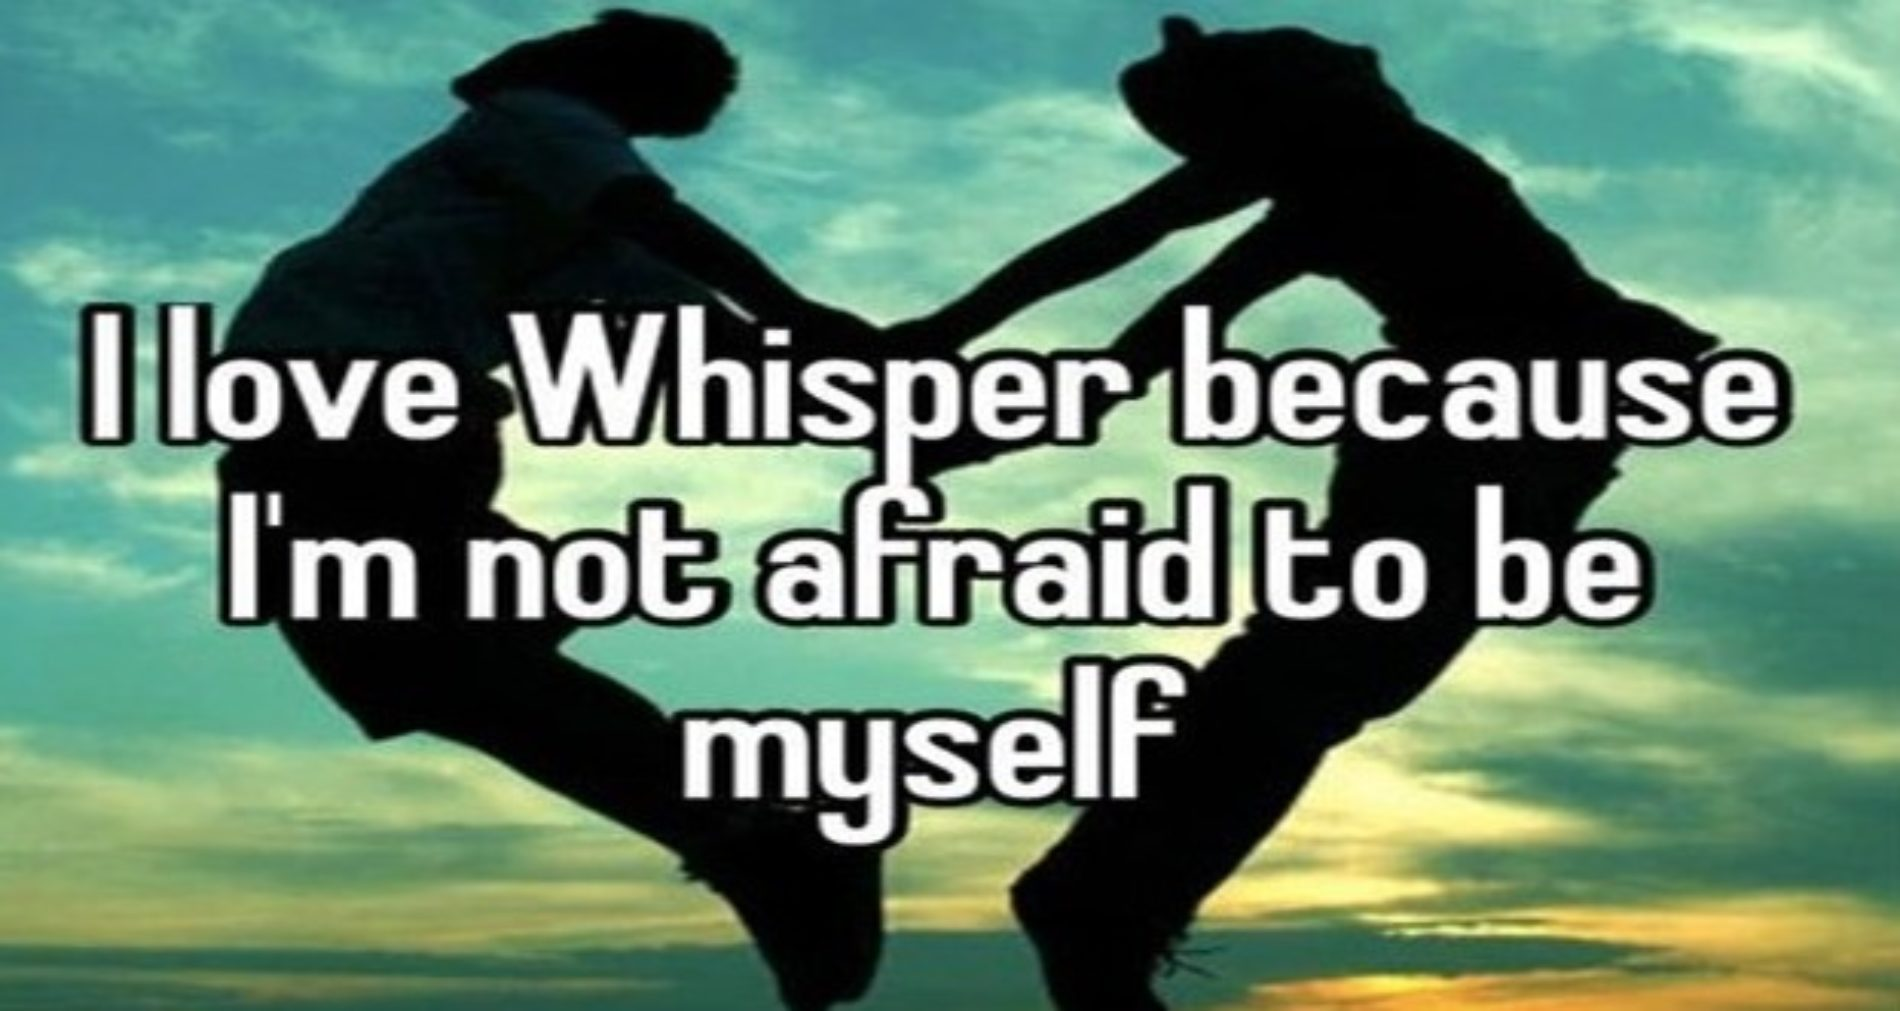 Photo: Whisper pulled one on me